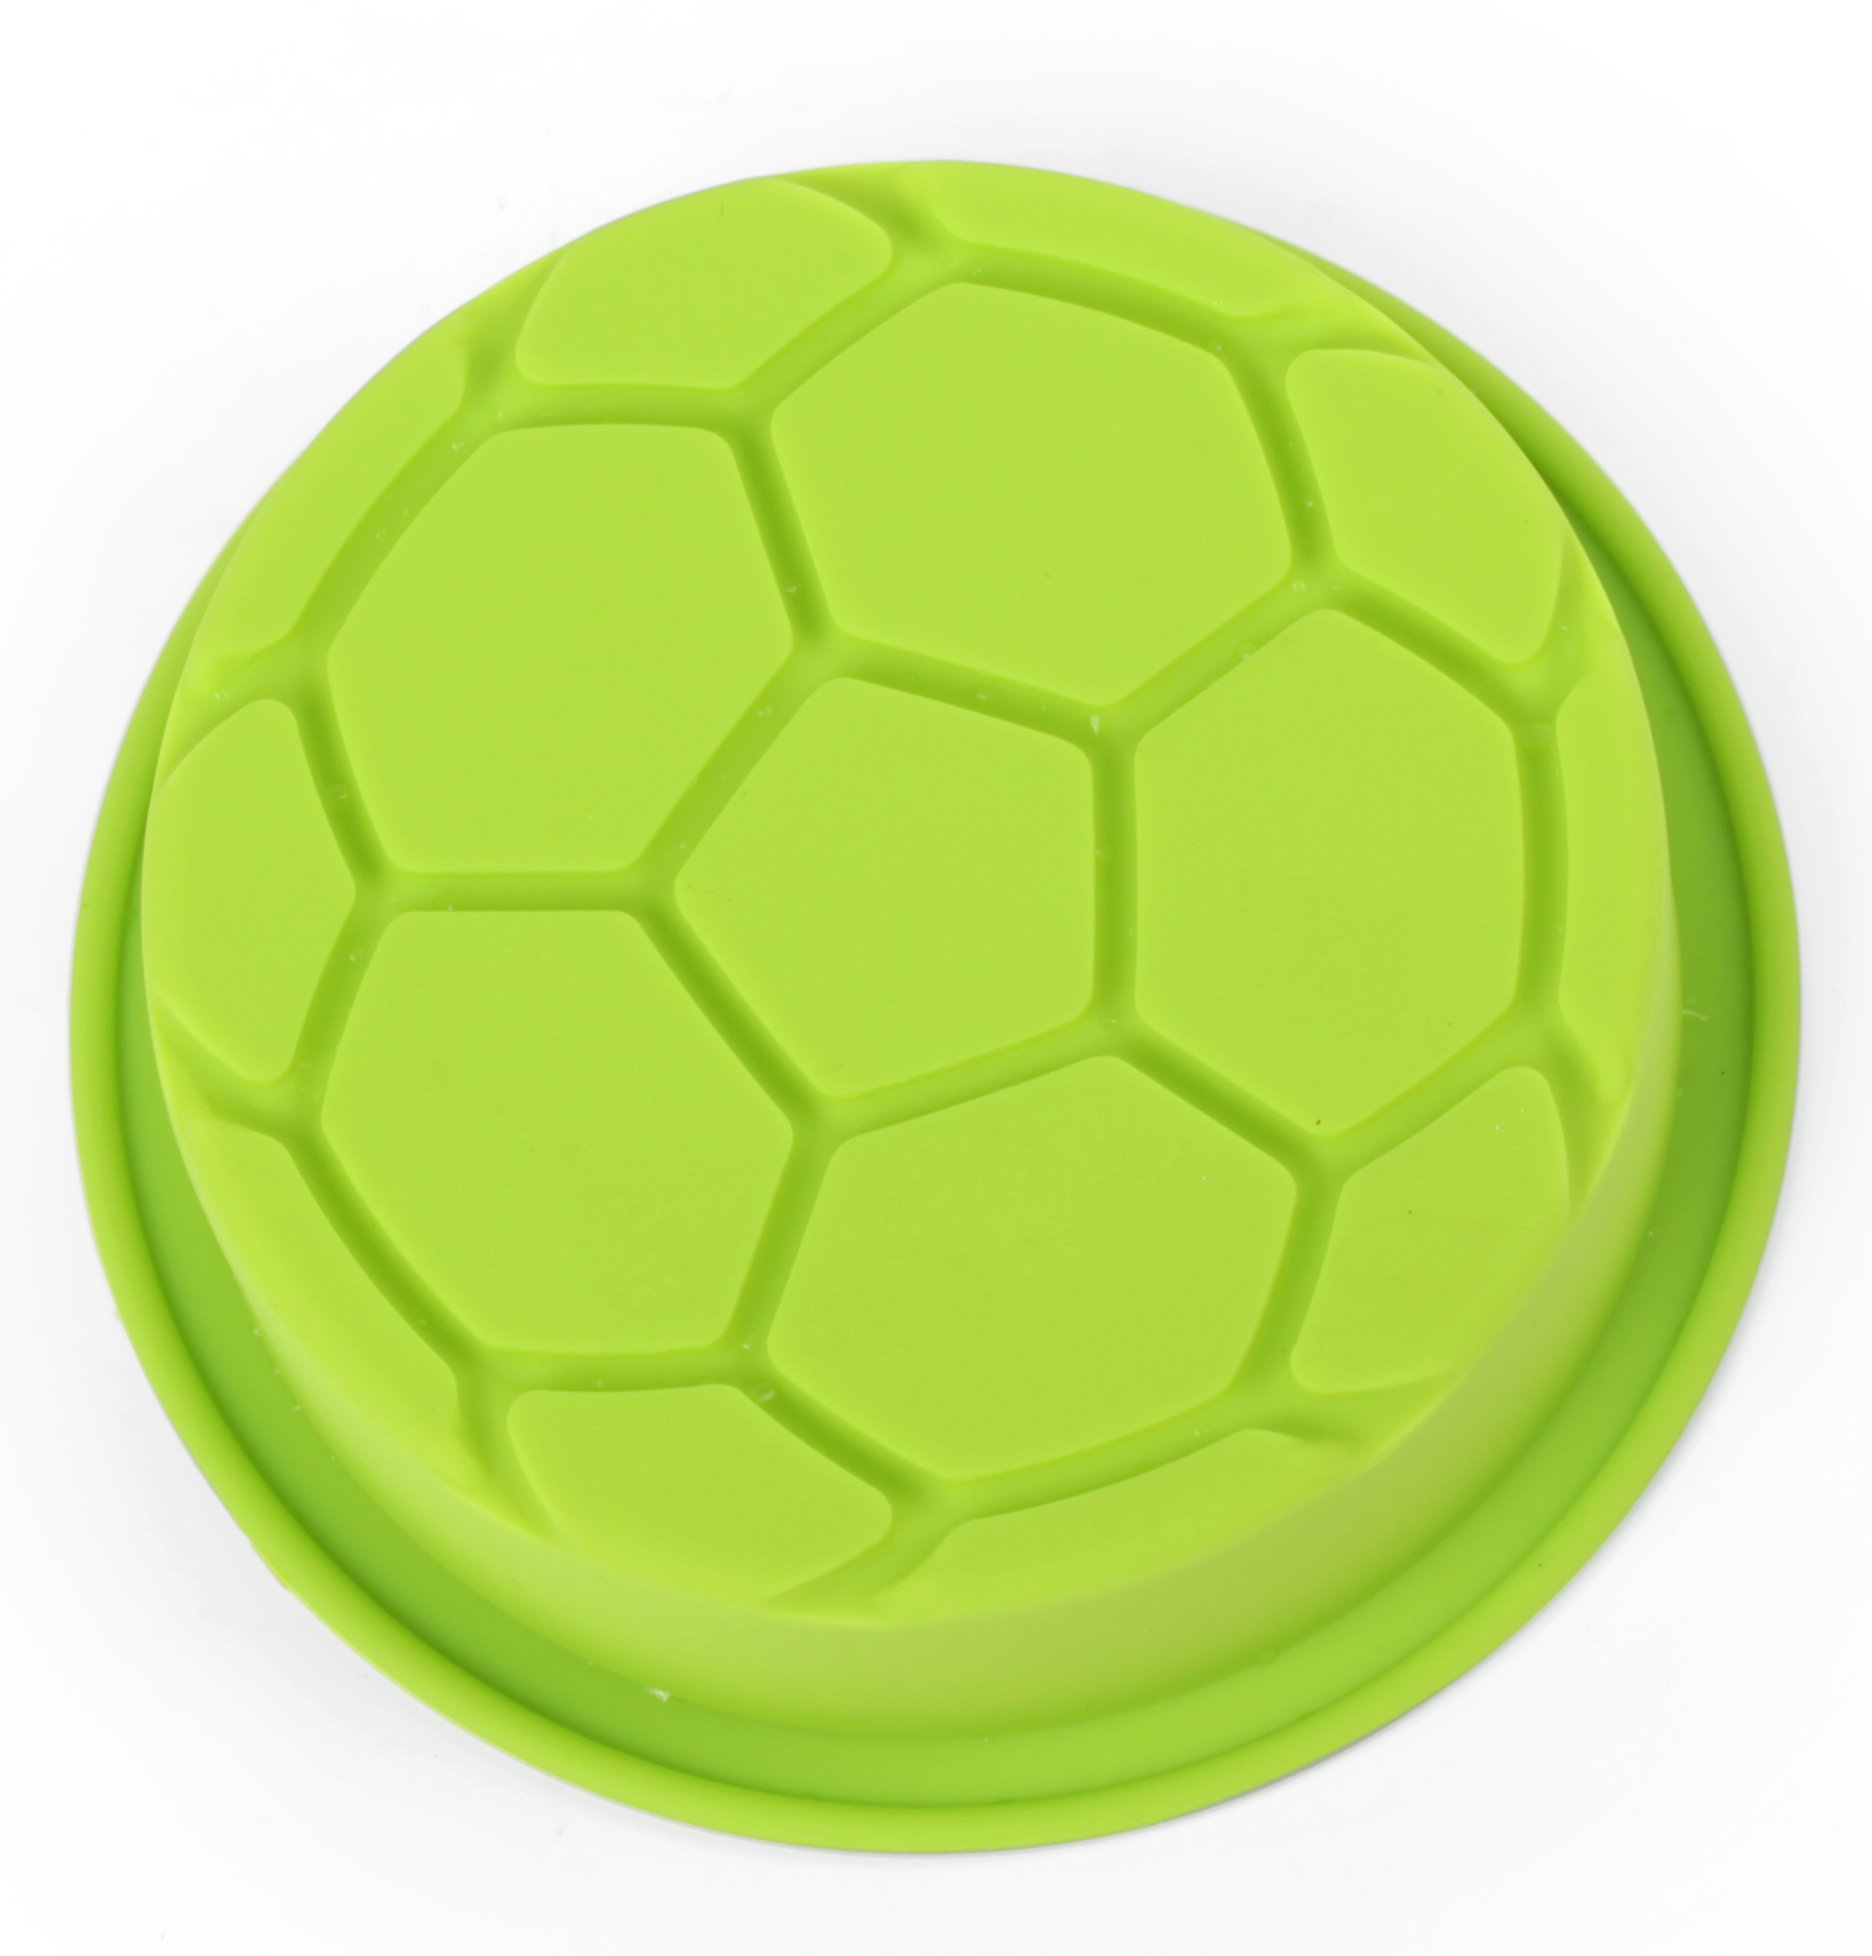 Home Value Colorful Silicone Sports Ball Set'' Soccer, Tennis, Baseball, Basketball '' Cake Mold, Assorted Colors (HVCOOKIECUTSC09) by Value Home (Image #4)